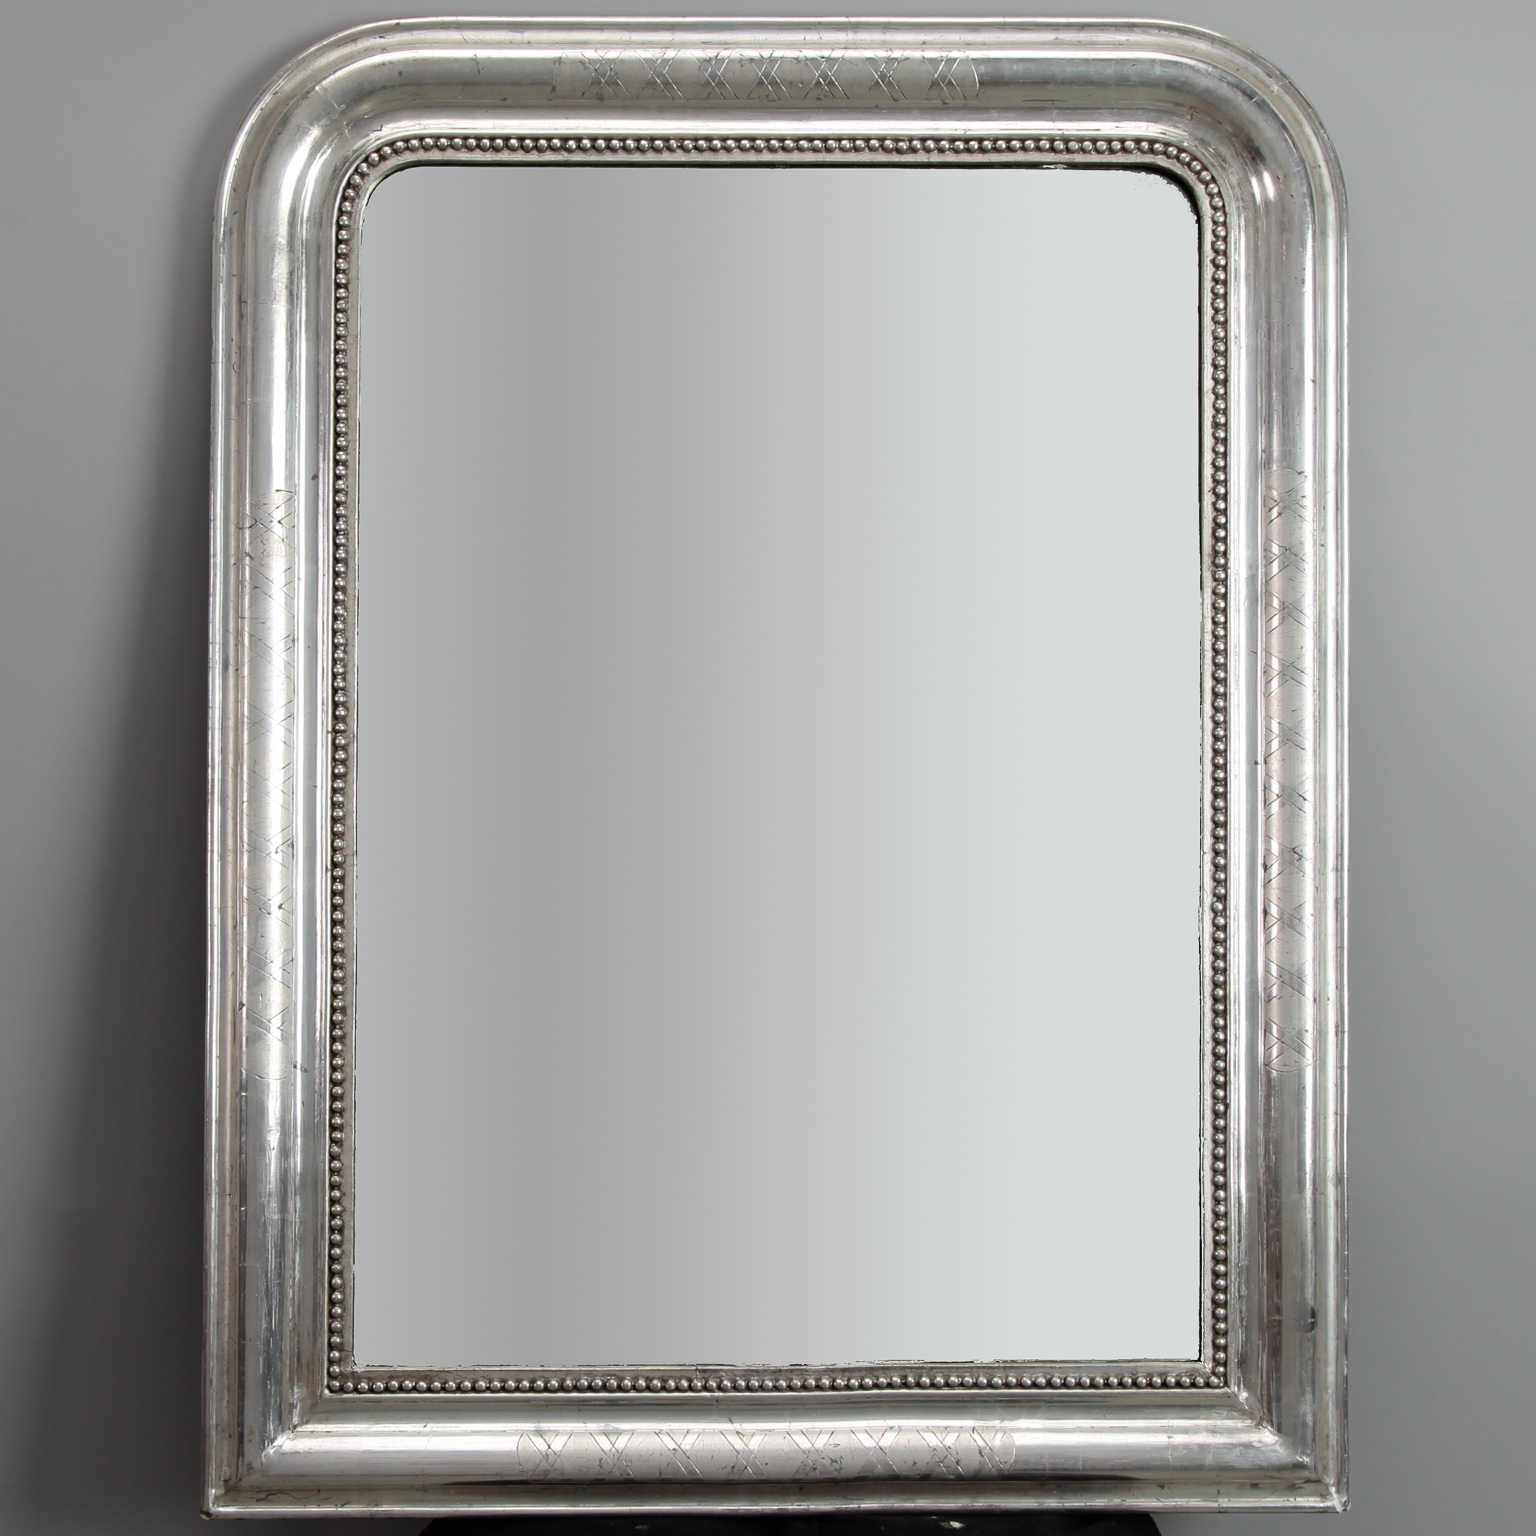 Antique Mirrors Judy Frankel Antiques With Regard To Large Gilt Framed Mirror (Image 3 of 15)